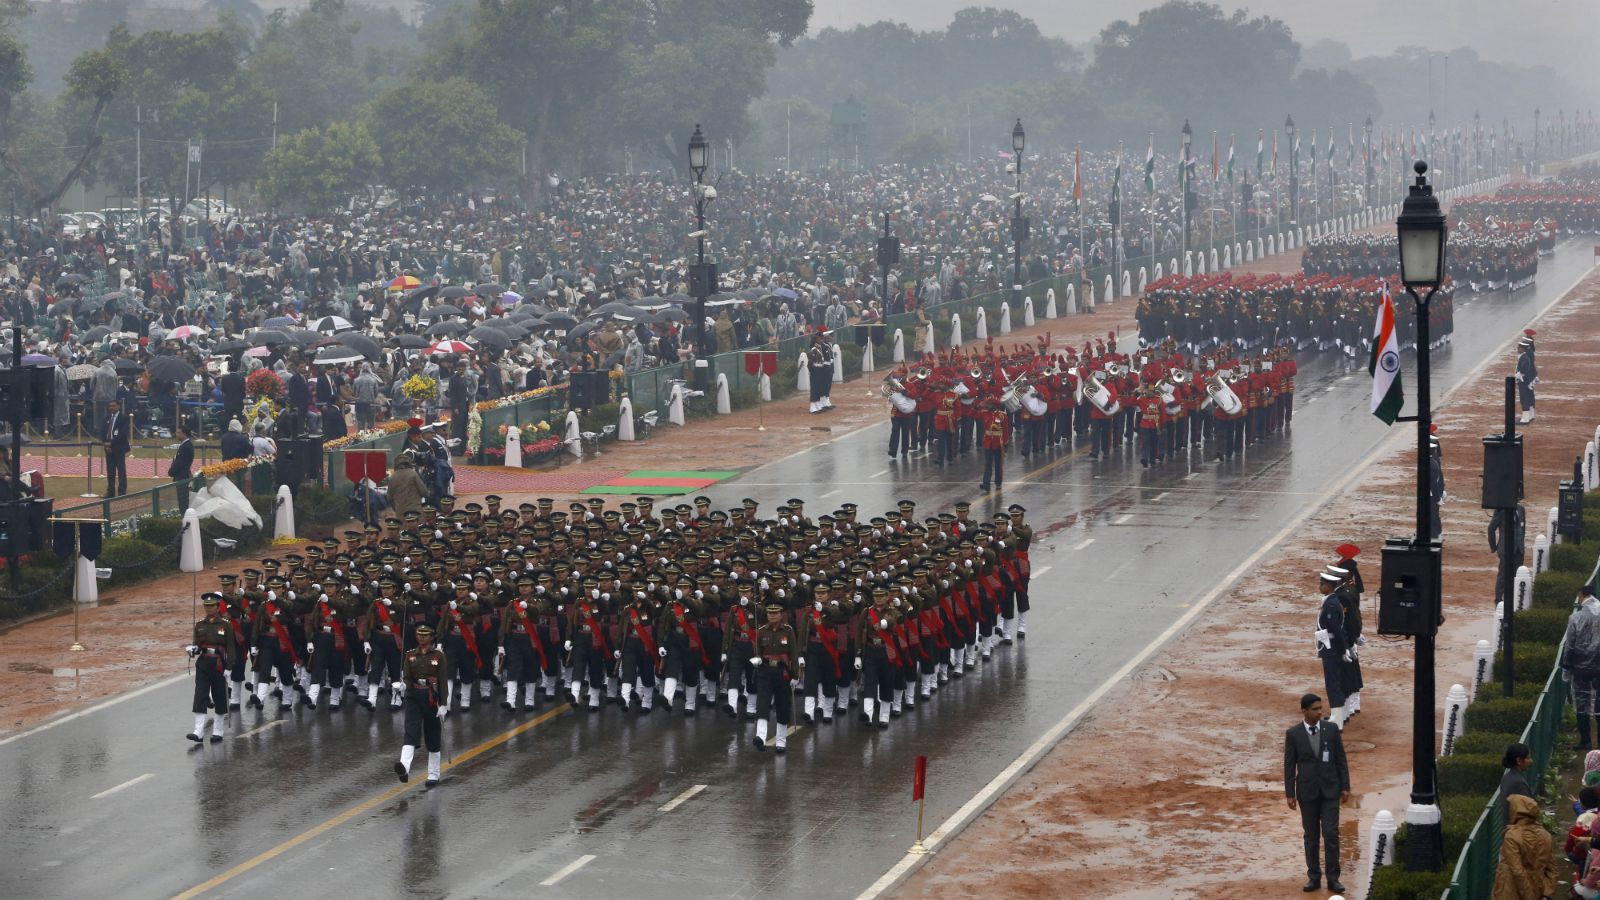 Indian Army women personnel march during the Republic Day parade in New Delhi, India, Monday, Jan. 26, 2015. Republic Day marks the anniversary of India's democratic constitution taking force in 1950. Beyond the show of military power, the parade includes ornate floats highlighting India's cultural diversity.